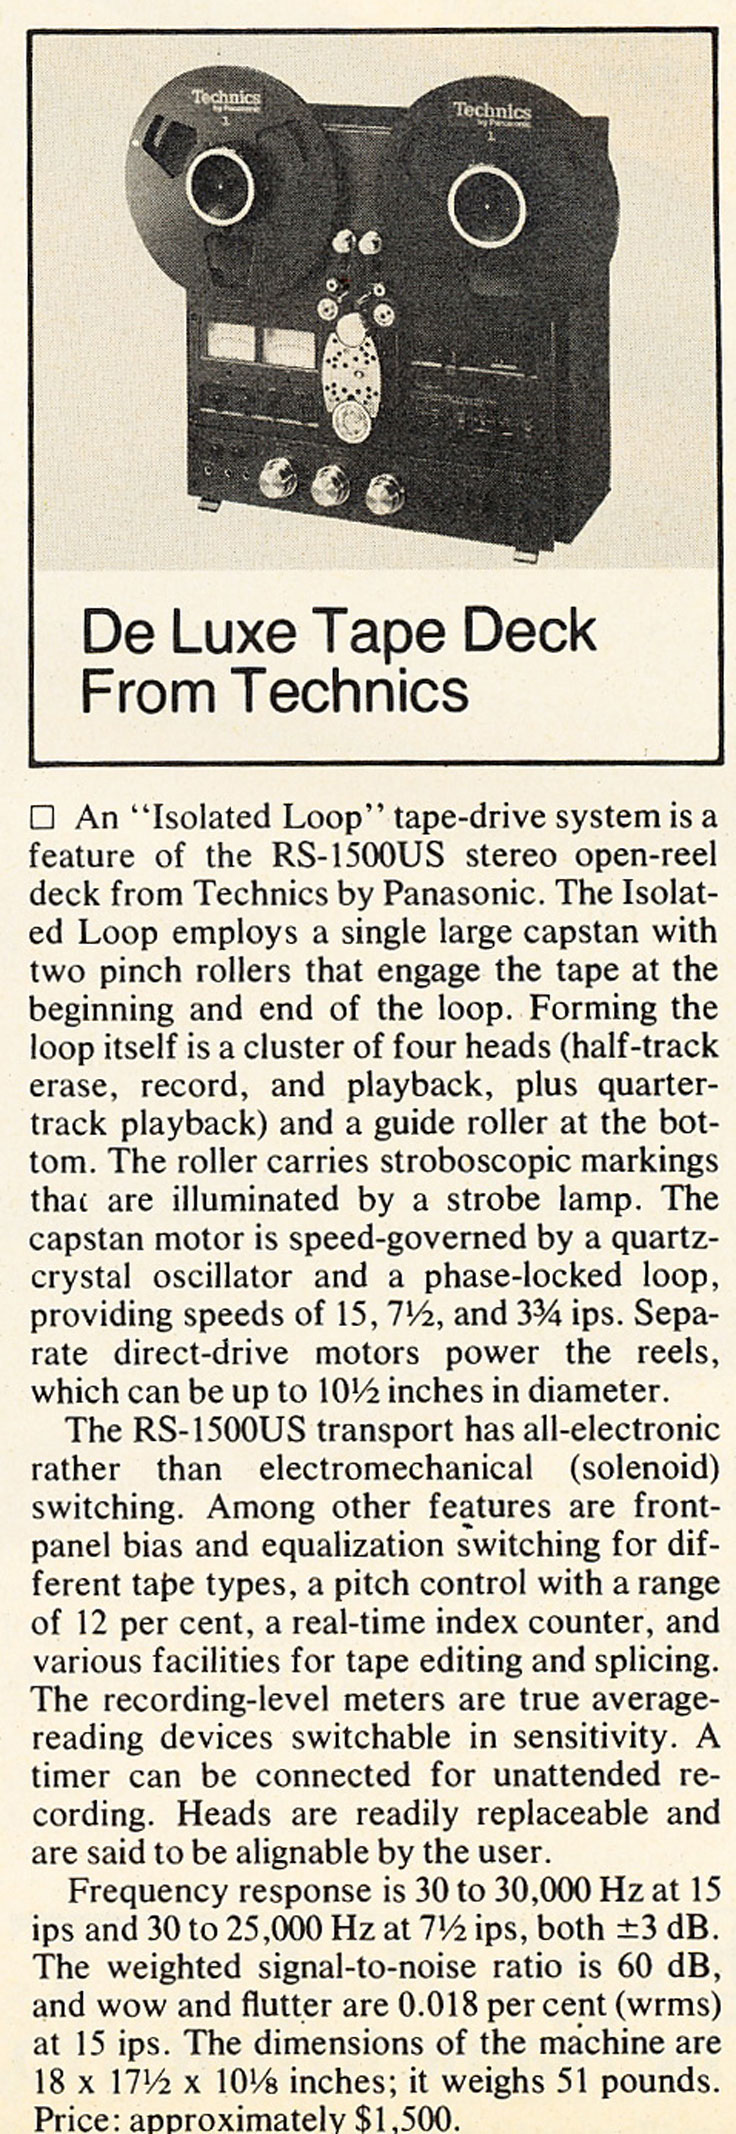 1977 review profiling the Technics RS-1500 reel to reel tape recorder in Reel2ReelTexas.com's vintage recording collection